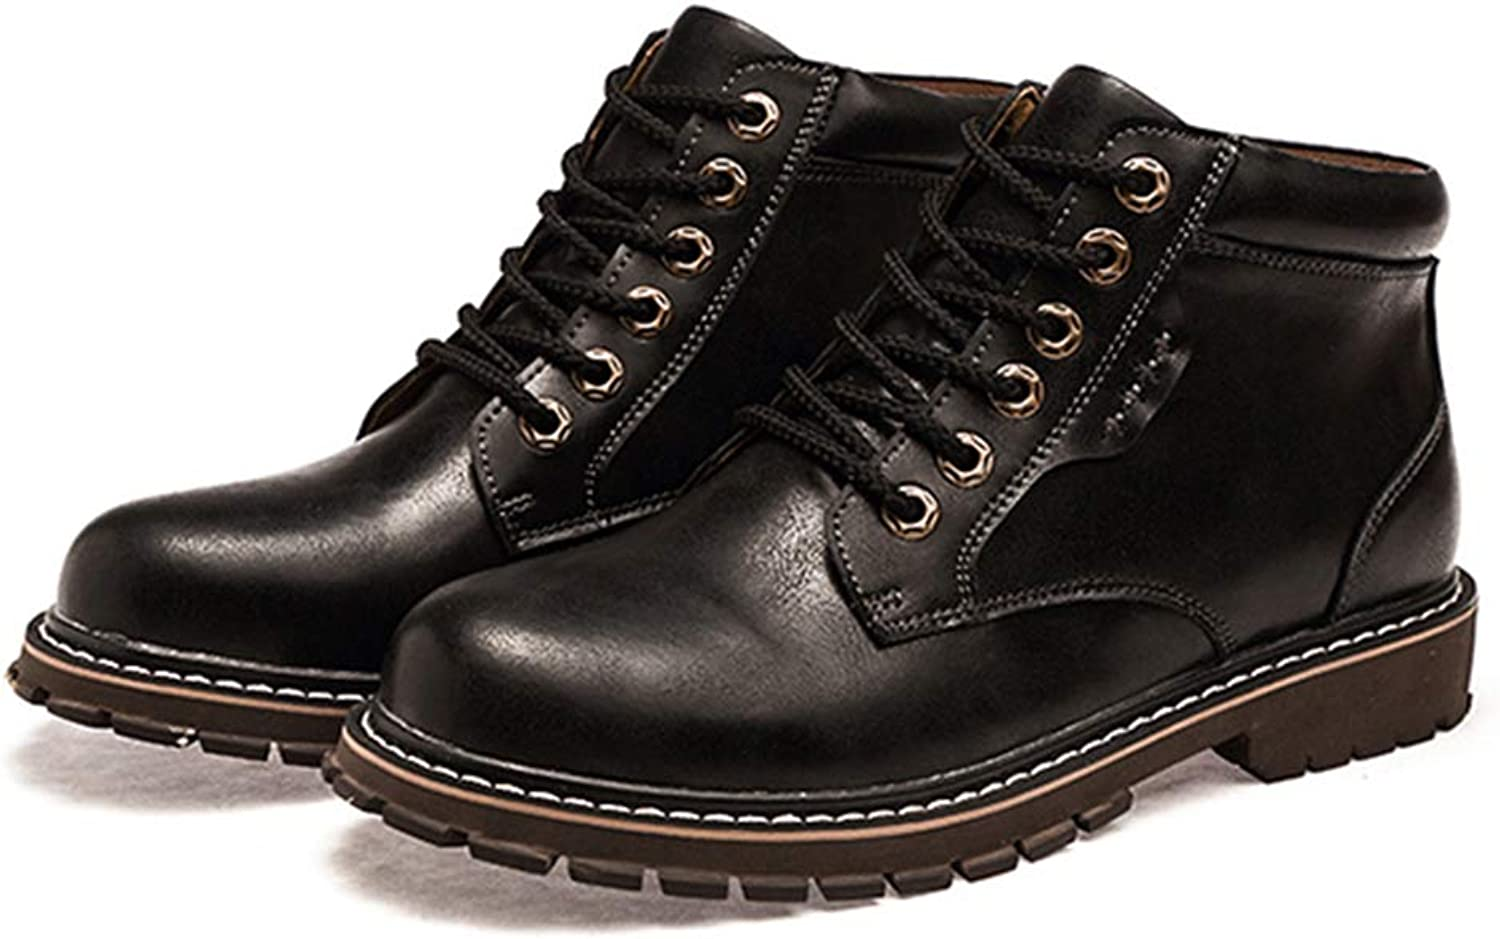 Mens Leather Work Boots Male Safety Boots Ankle Leather shoes Winter Martin Boots Lace Up Footwear with Thick Fur